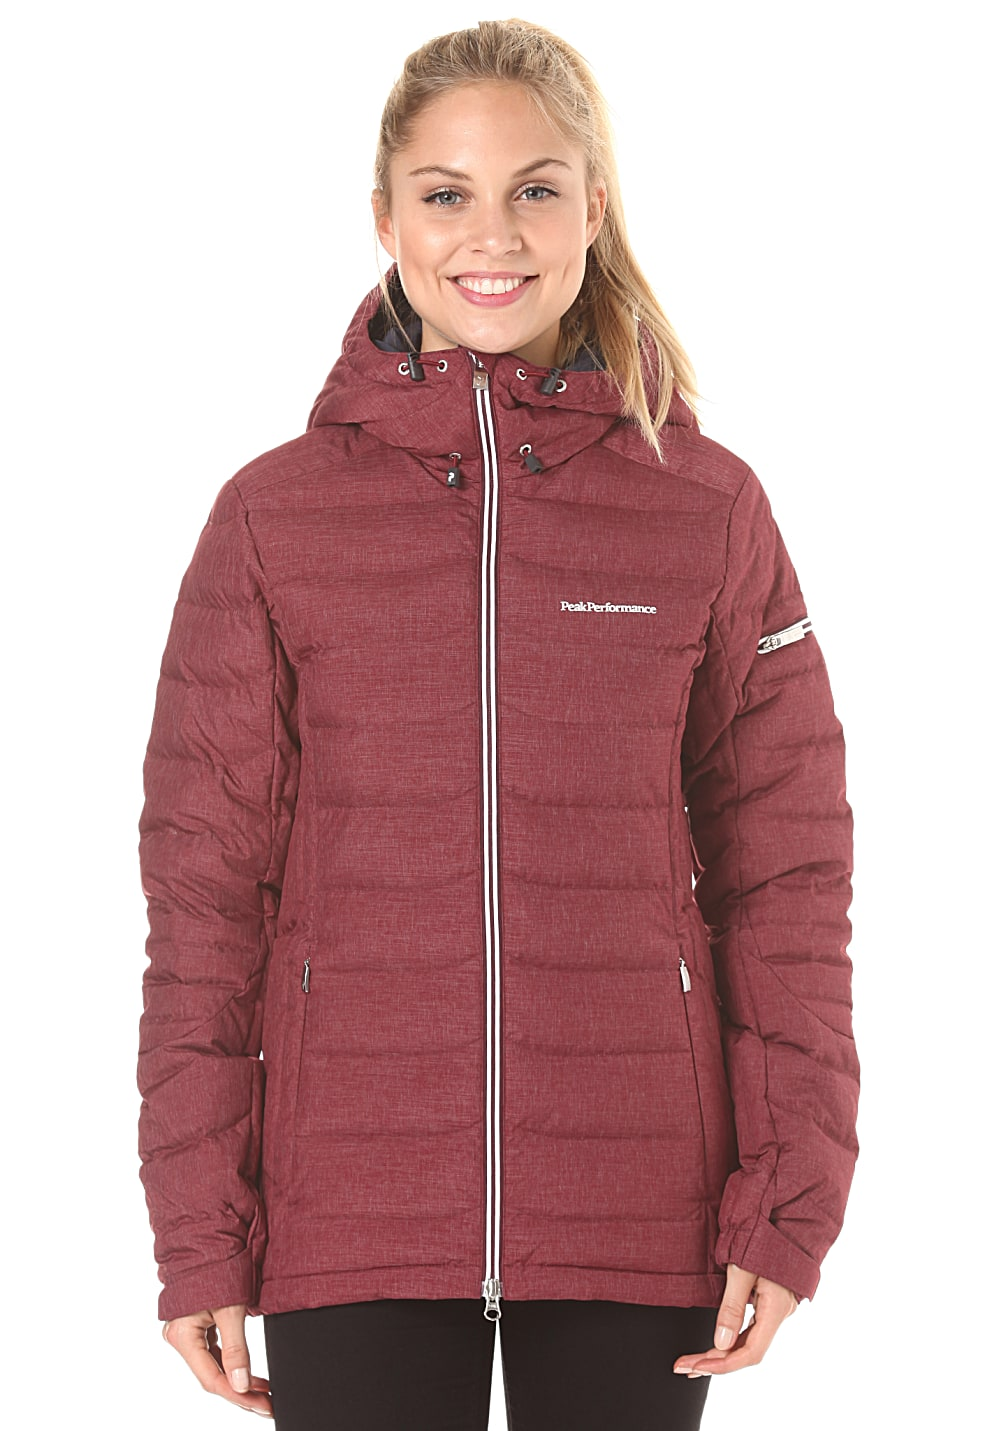 Peak Performance Blackburn - Snowboardjacke für Damen - Rot - M